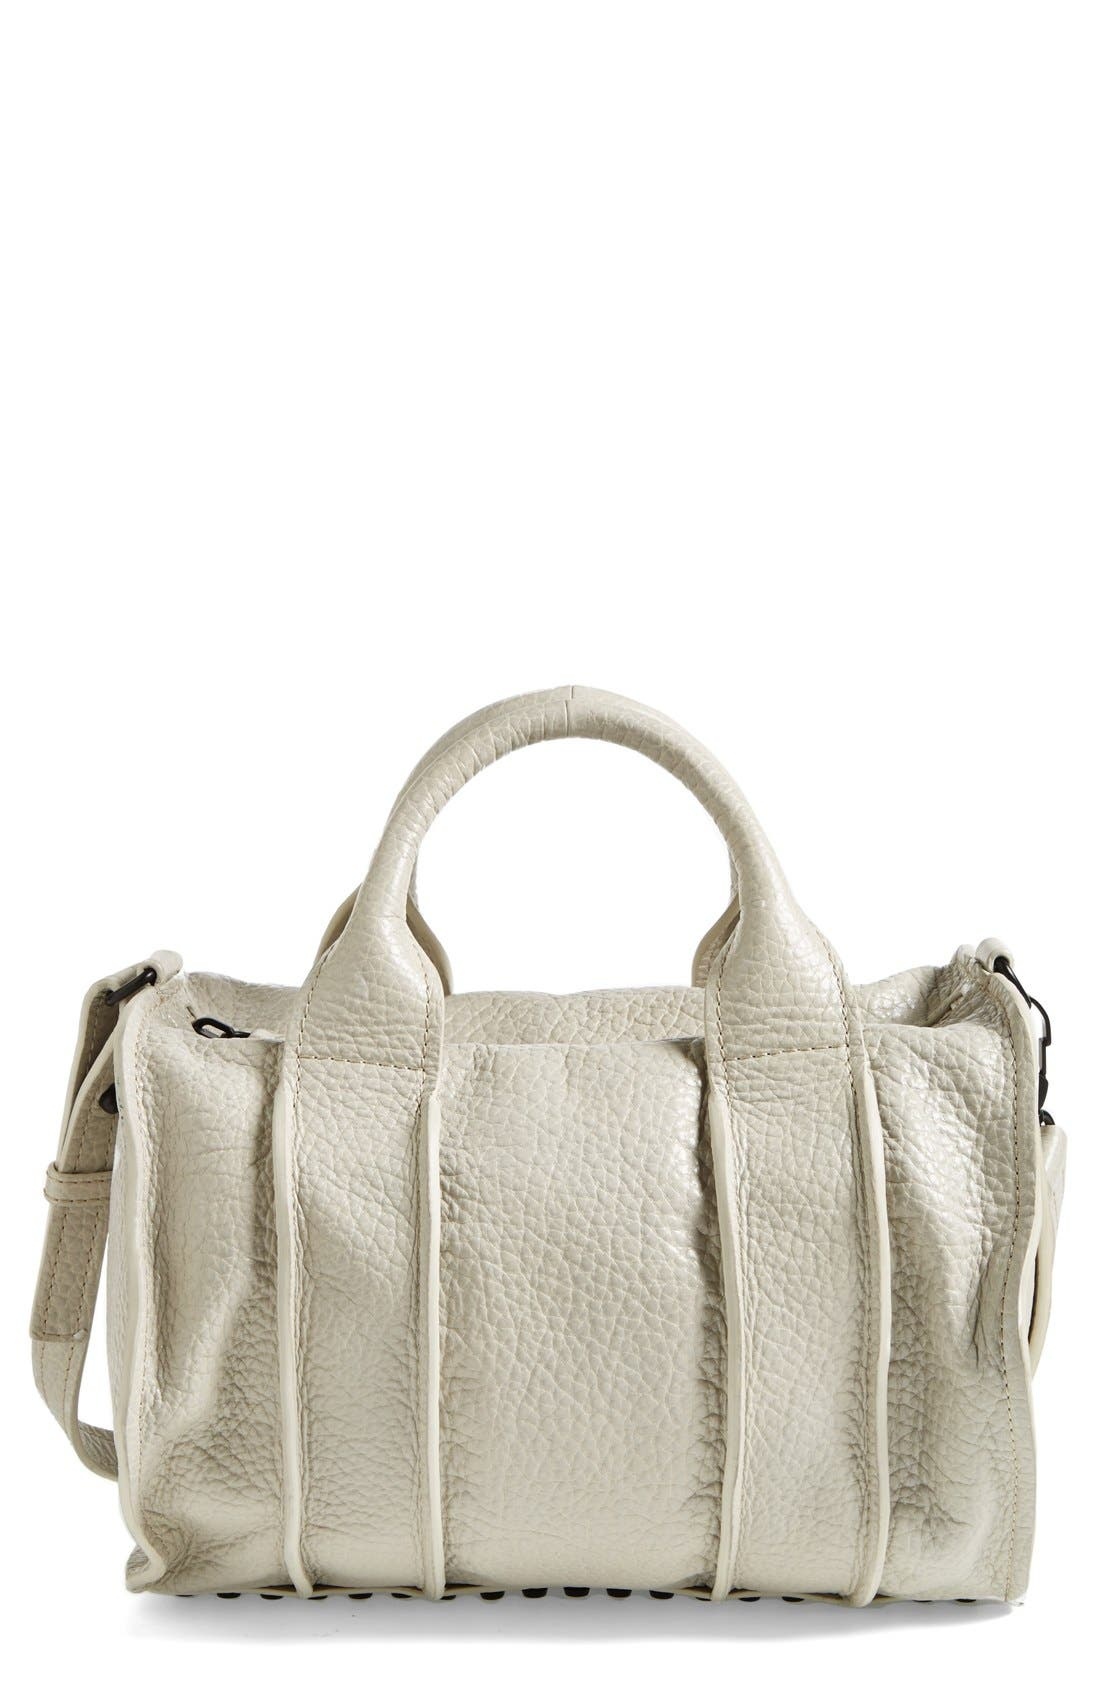 Alternate Image 1 Selected - Alexander Wang 'Rocco - Inside Out' Leather Satchel